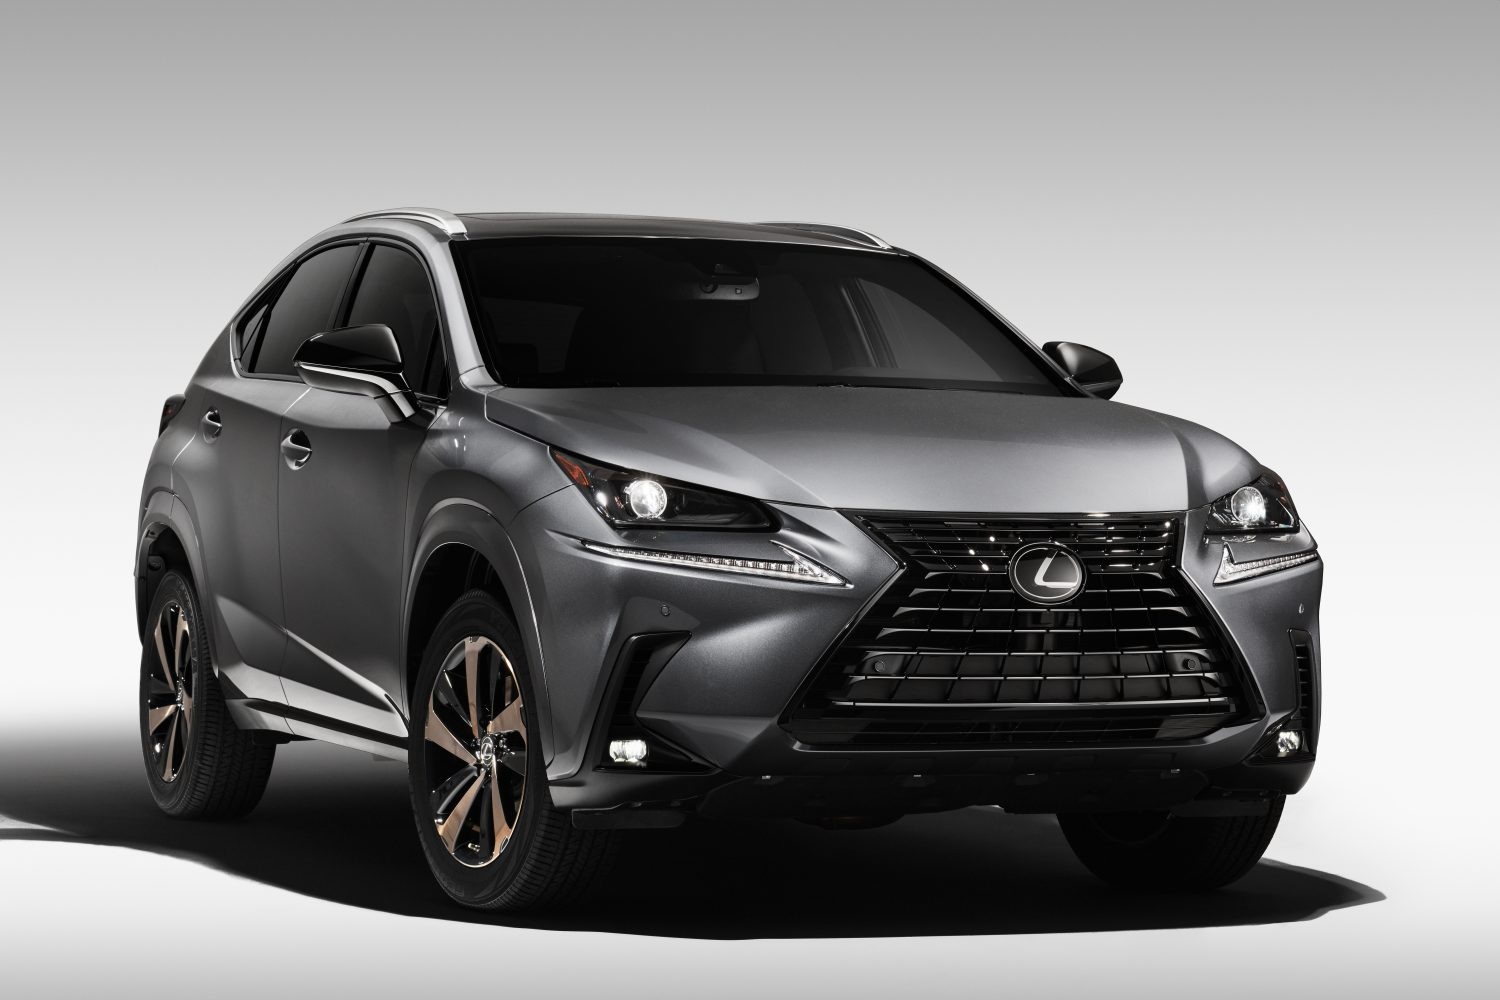 2020 Lexus Nx Price, Design and Review